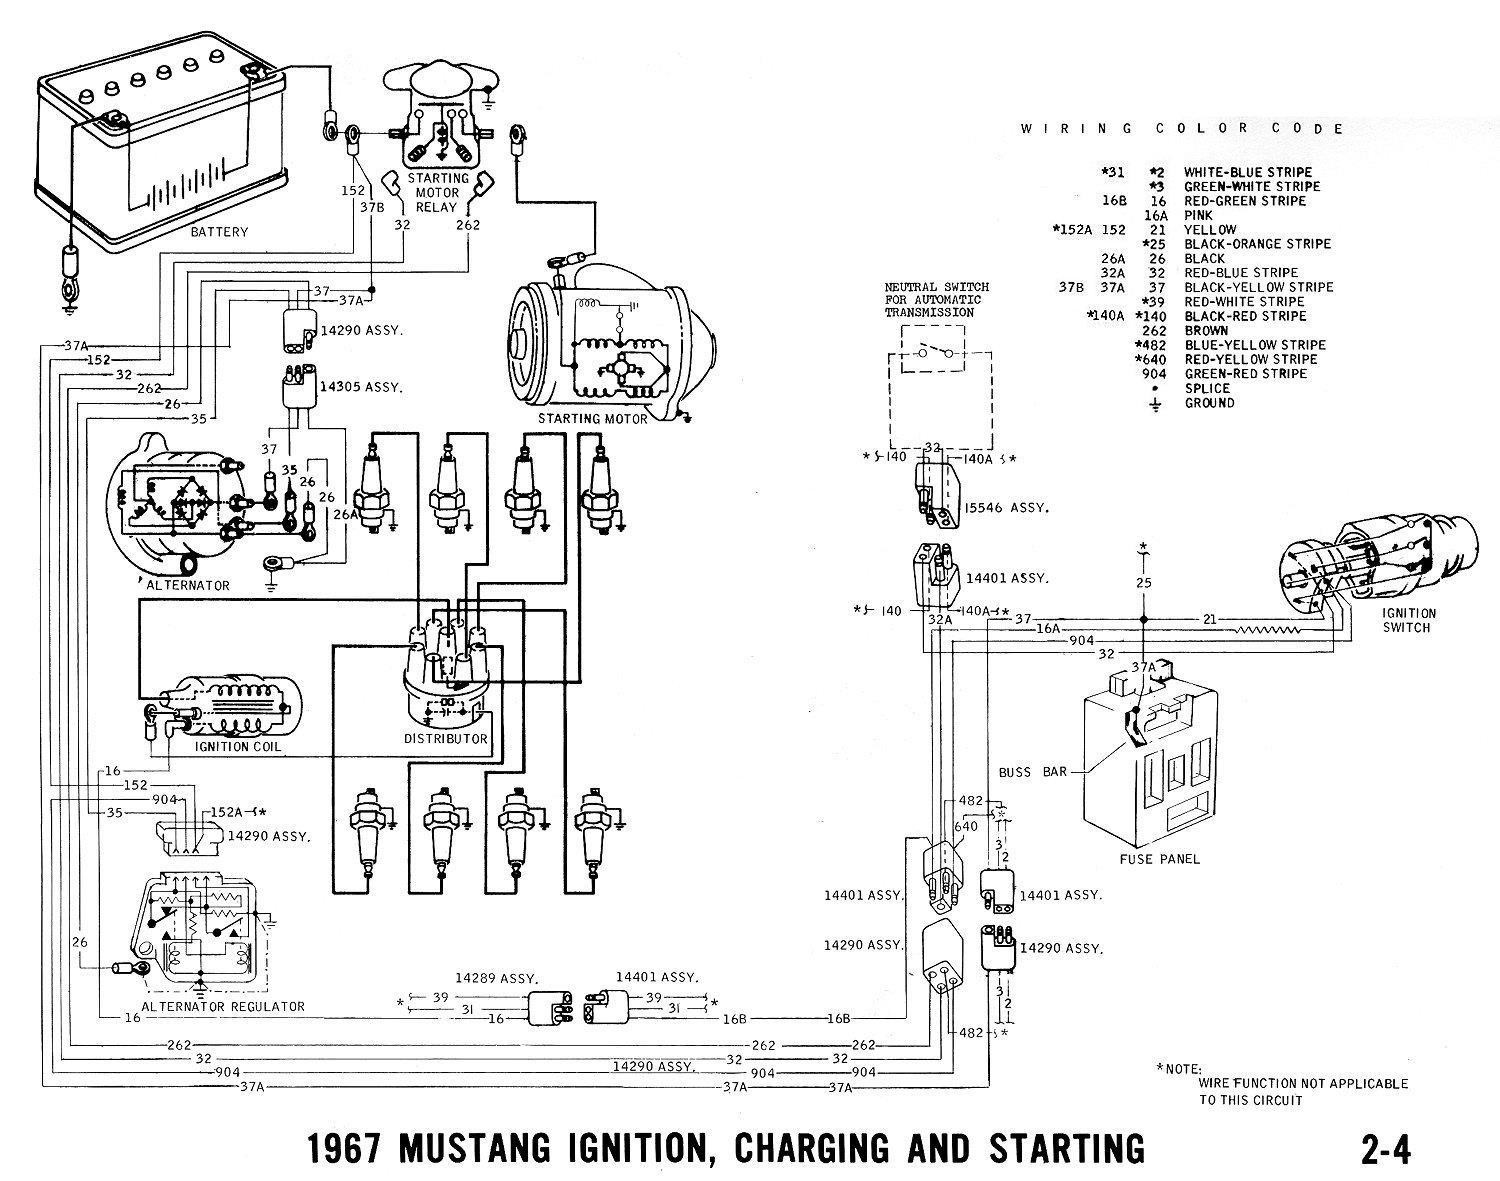 hight resolution of 1982 mustang alt wiring diagram wiring diagram val 1983 ford mustang alternator wiring diagram free picture